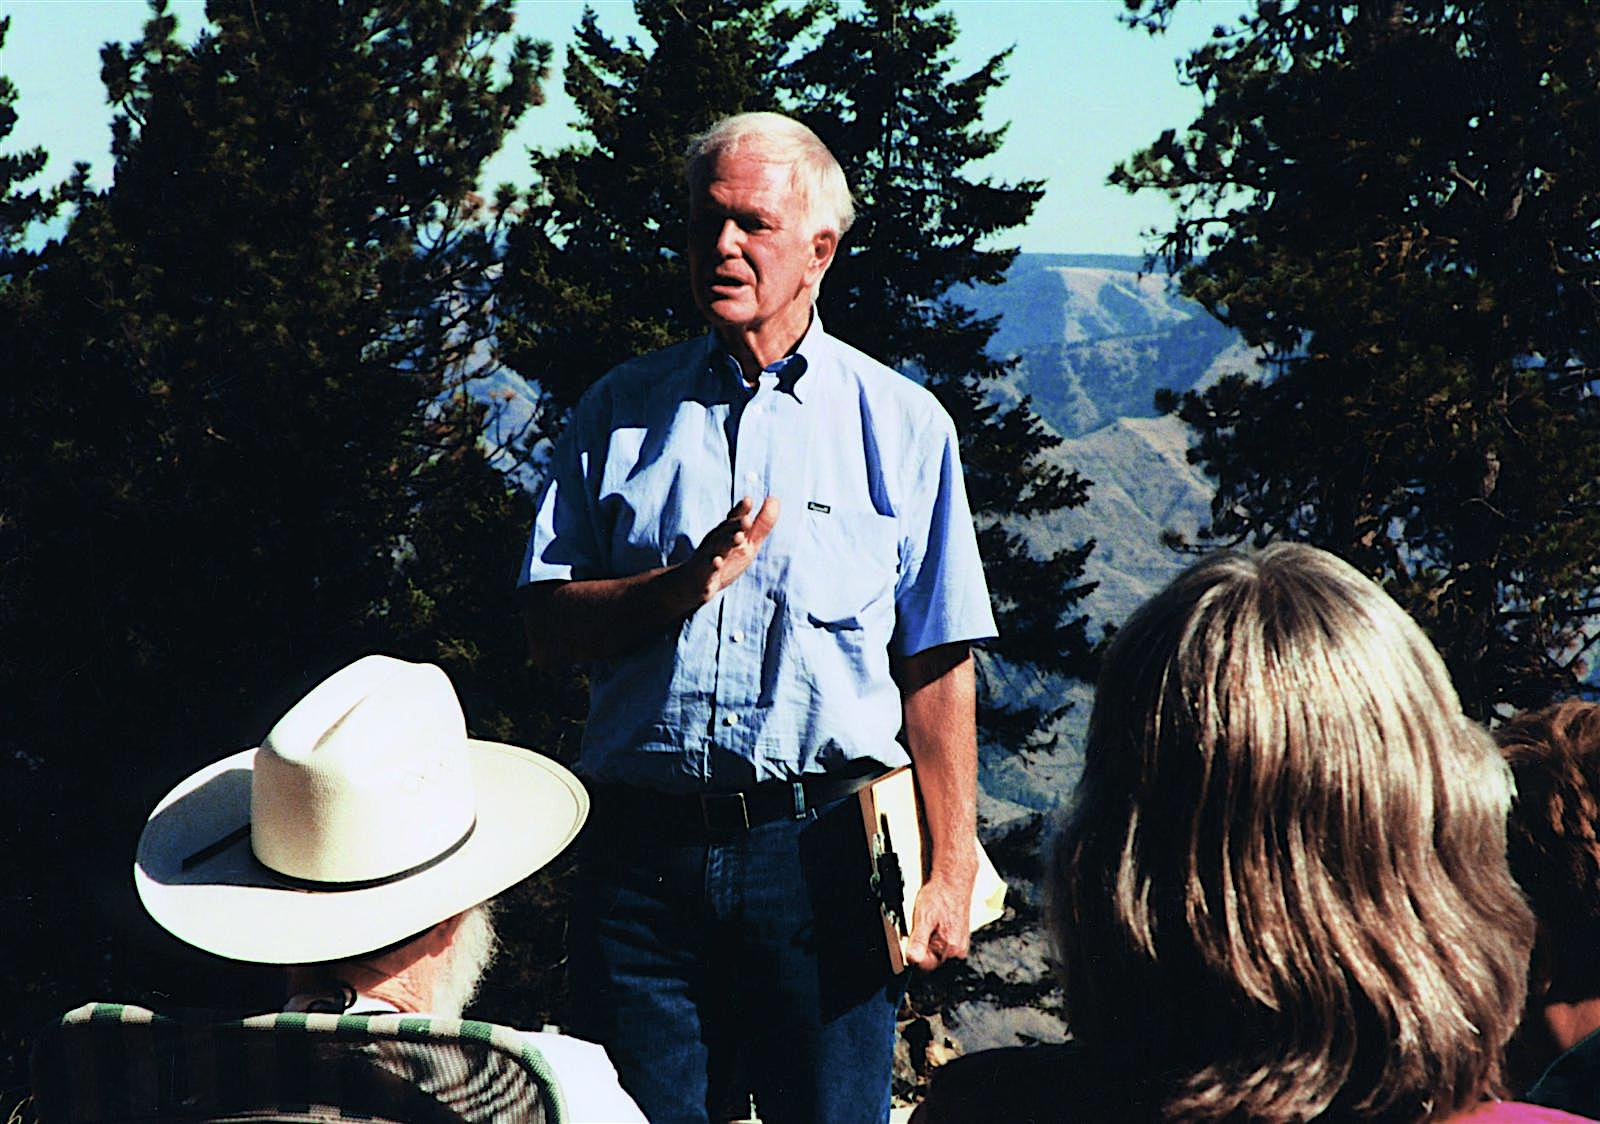 Senator Bob Packwood (R-OR) at Hat Point, overlooking Hells Canyon, 1986.  Photo: Elizabeth Feryl, Environmental Images